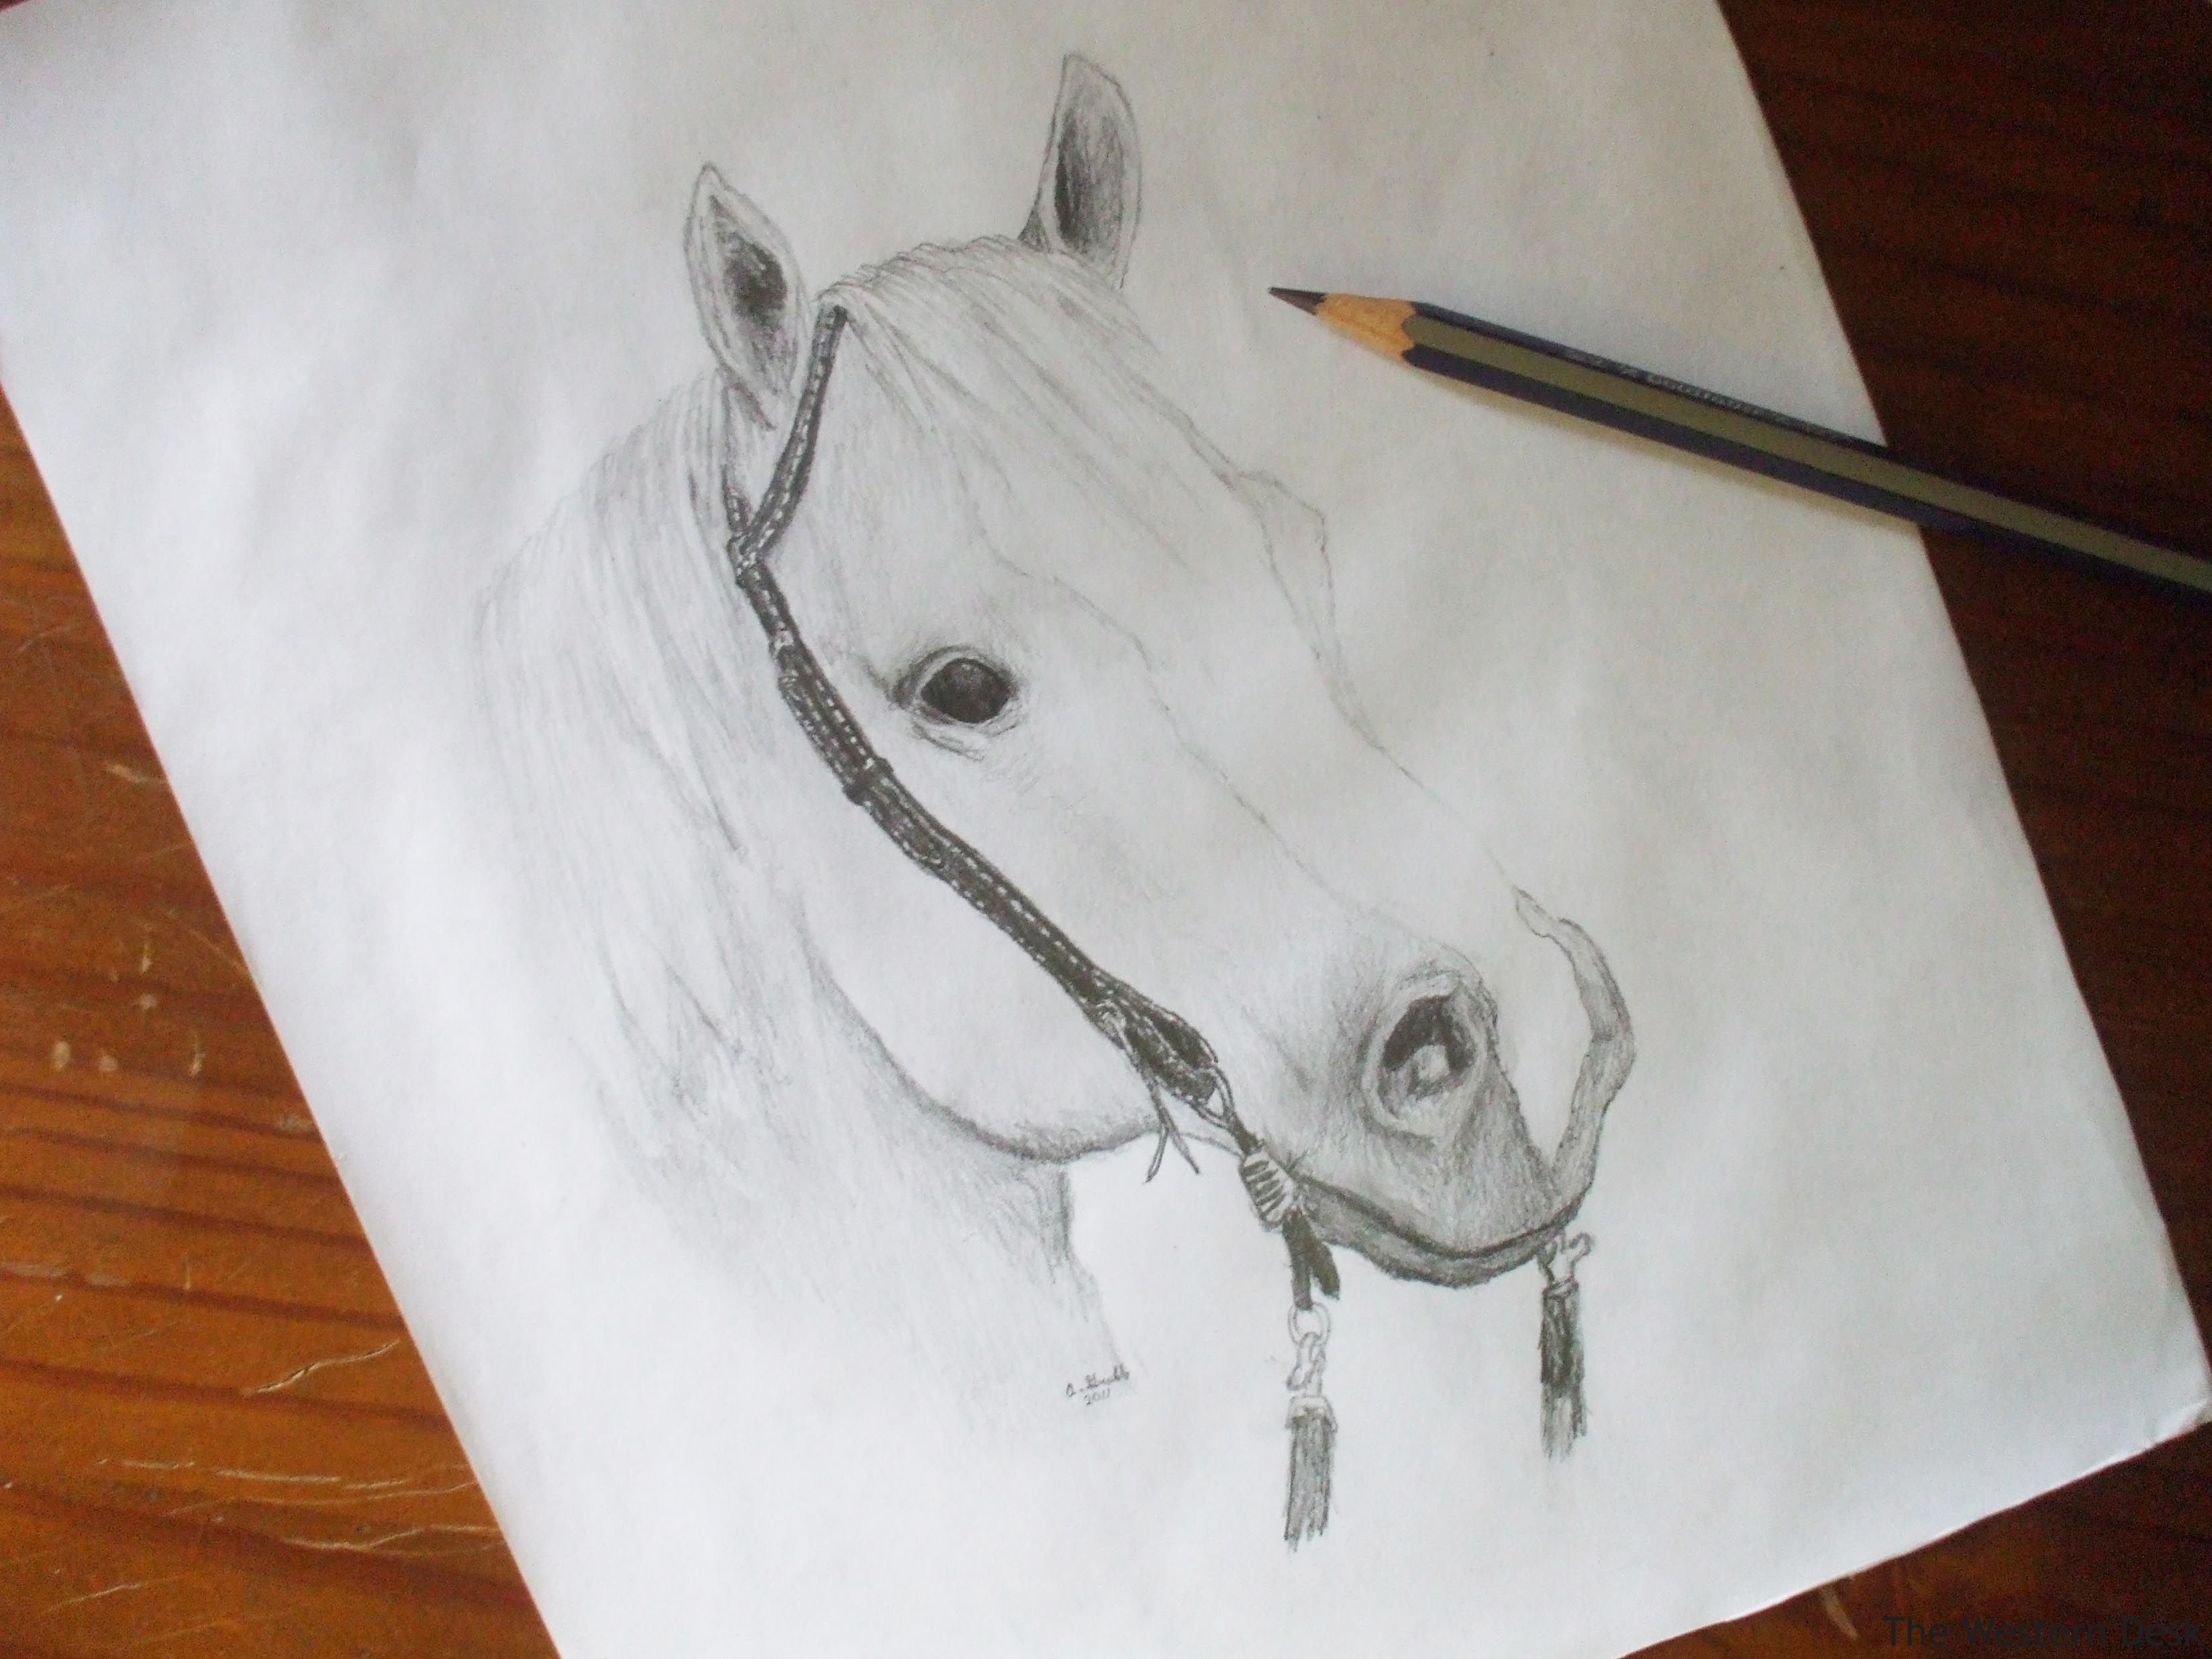 If you have ever looked at a horse in real life you will see that the middle area of a horses body is roundlike a barrel